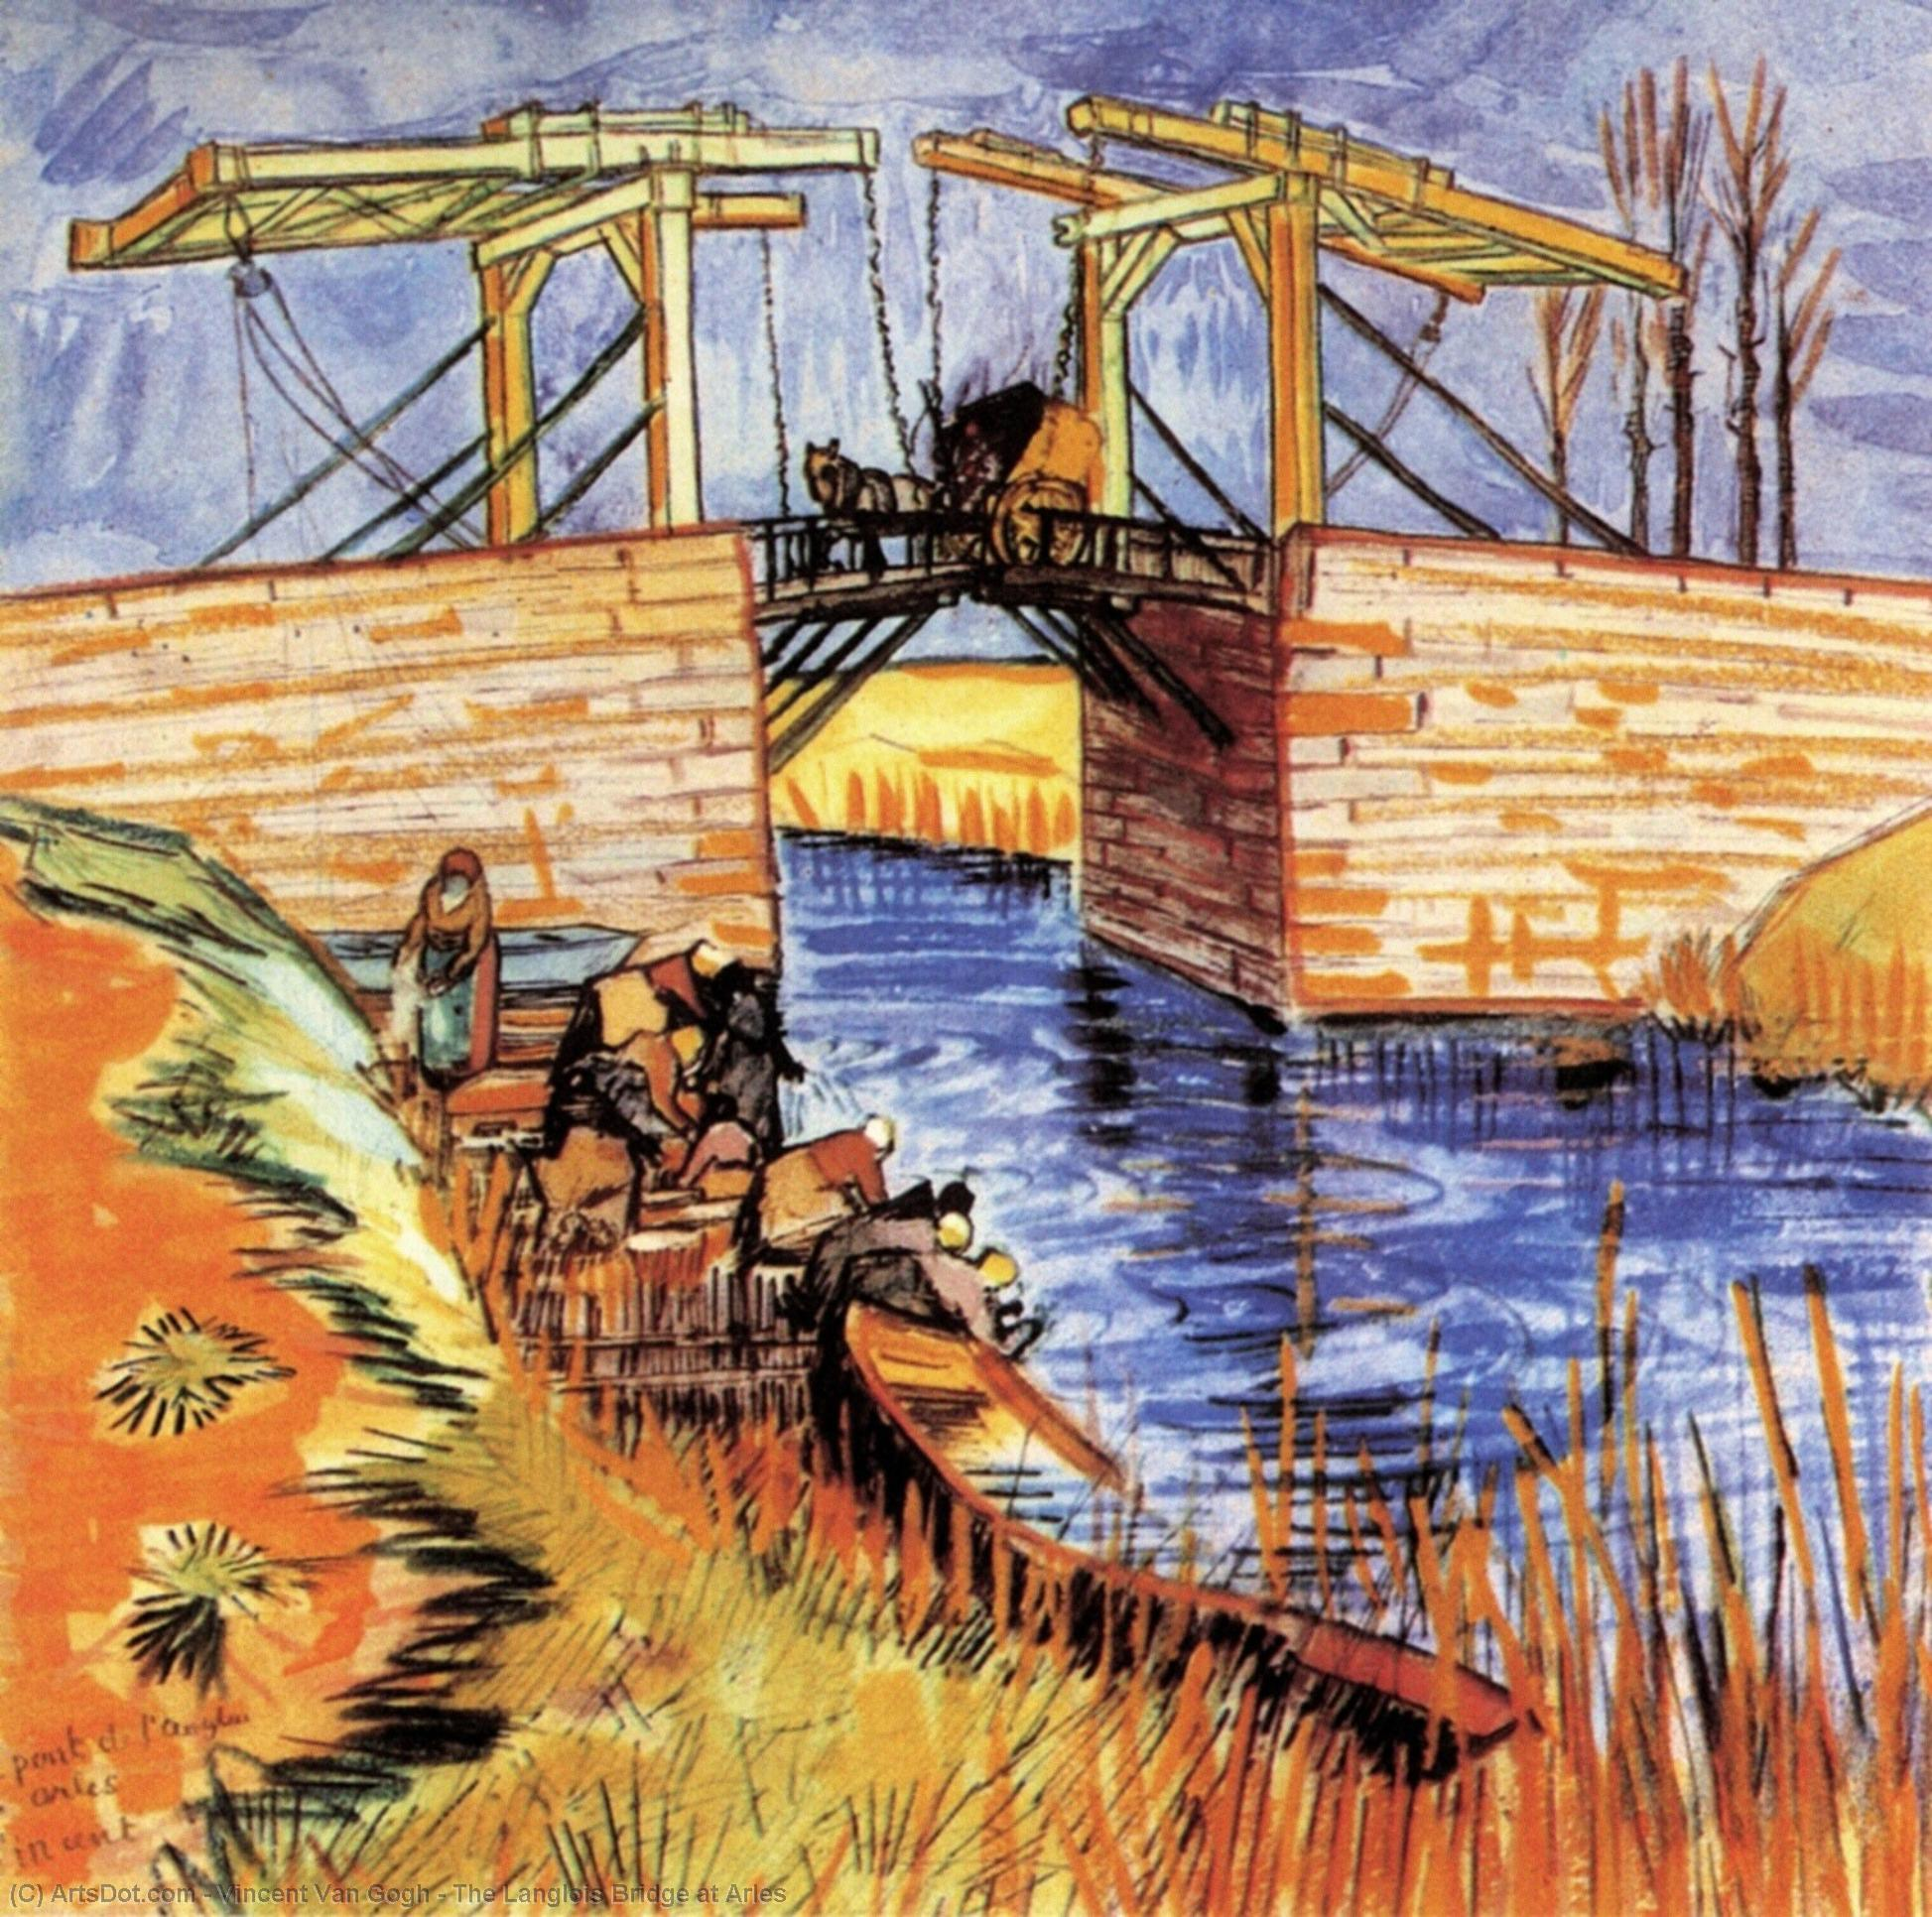 Wikioo.org - The Encyclopedia of Fine Arts - Painting, Artwork by Vincent Van Gogh - The Langlois Bridge at Arles